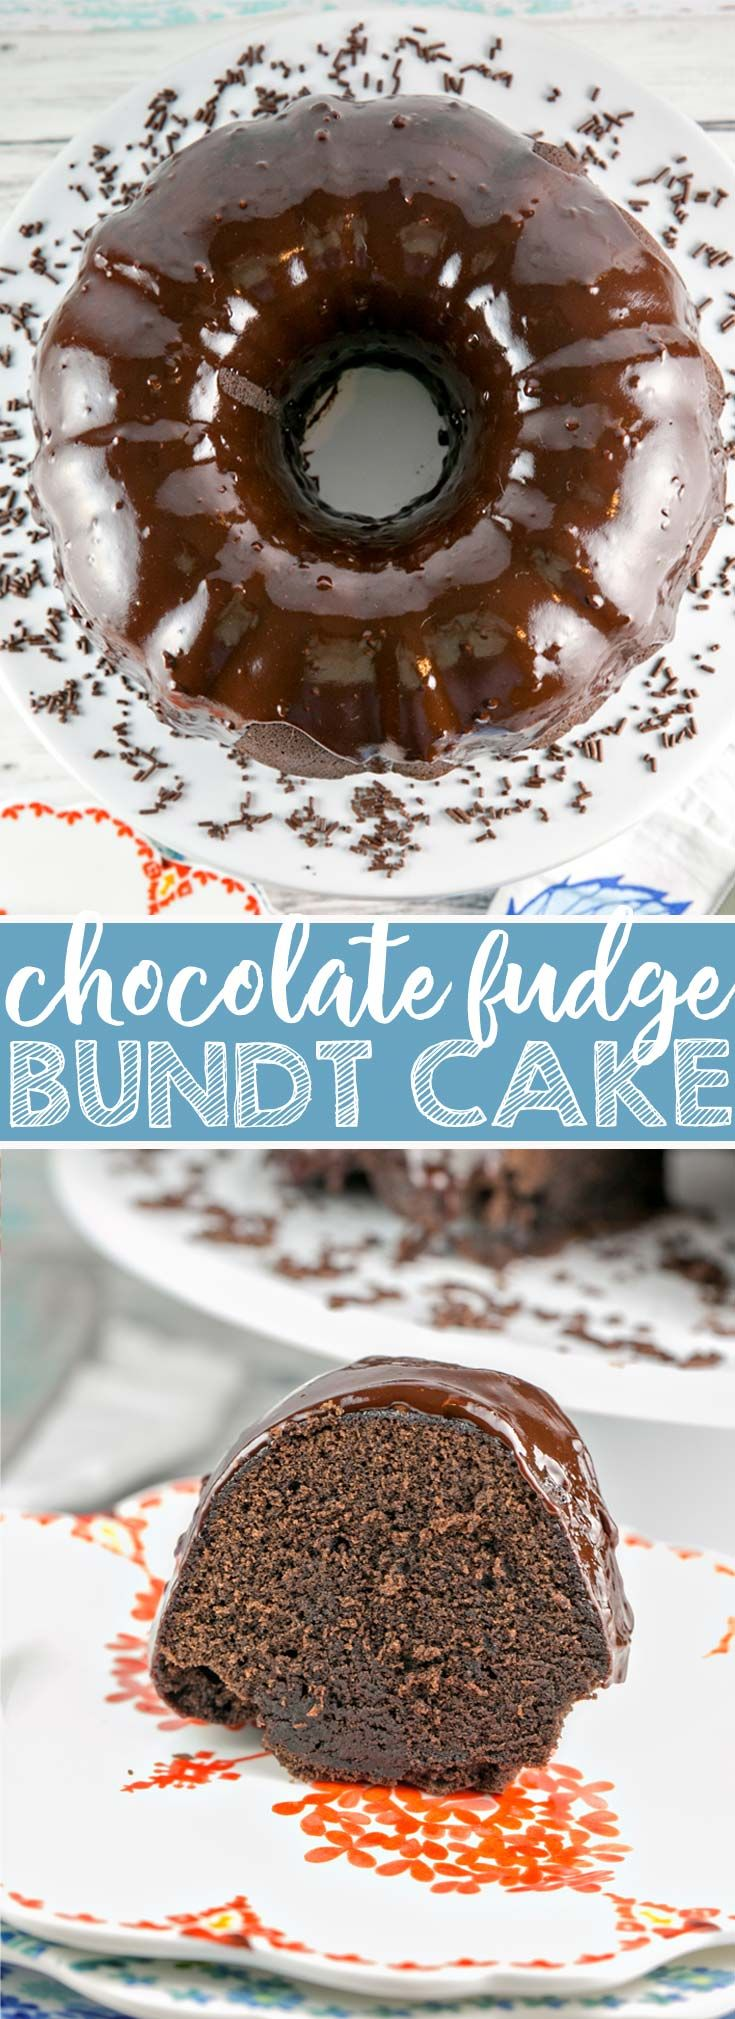 Chocolate Fudge Bundt Cake: a rich, fudgy chocolate cake, covered in chocolate ganache.  Easy enough for everyday, delicious enough for a celebration.  {Bunsen Burner Bakery} #cake #chocolatecake #bundtcake via @bnsnbrnrbakery